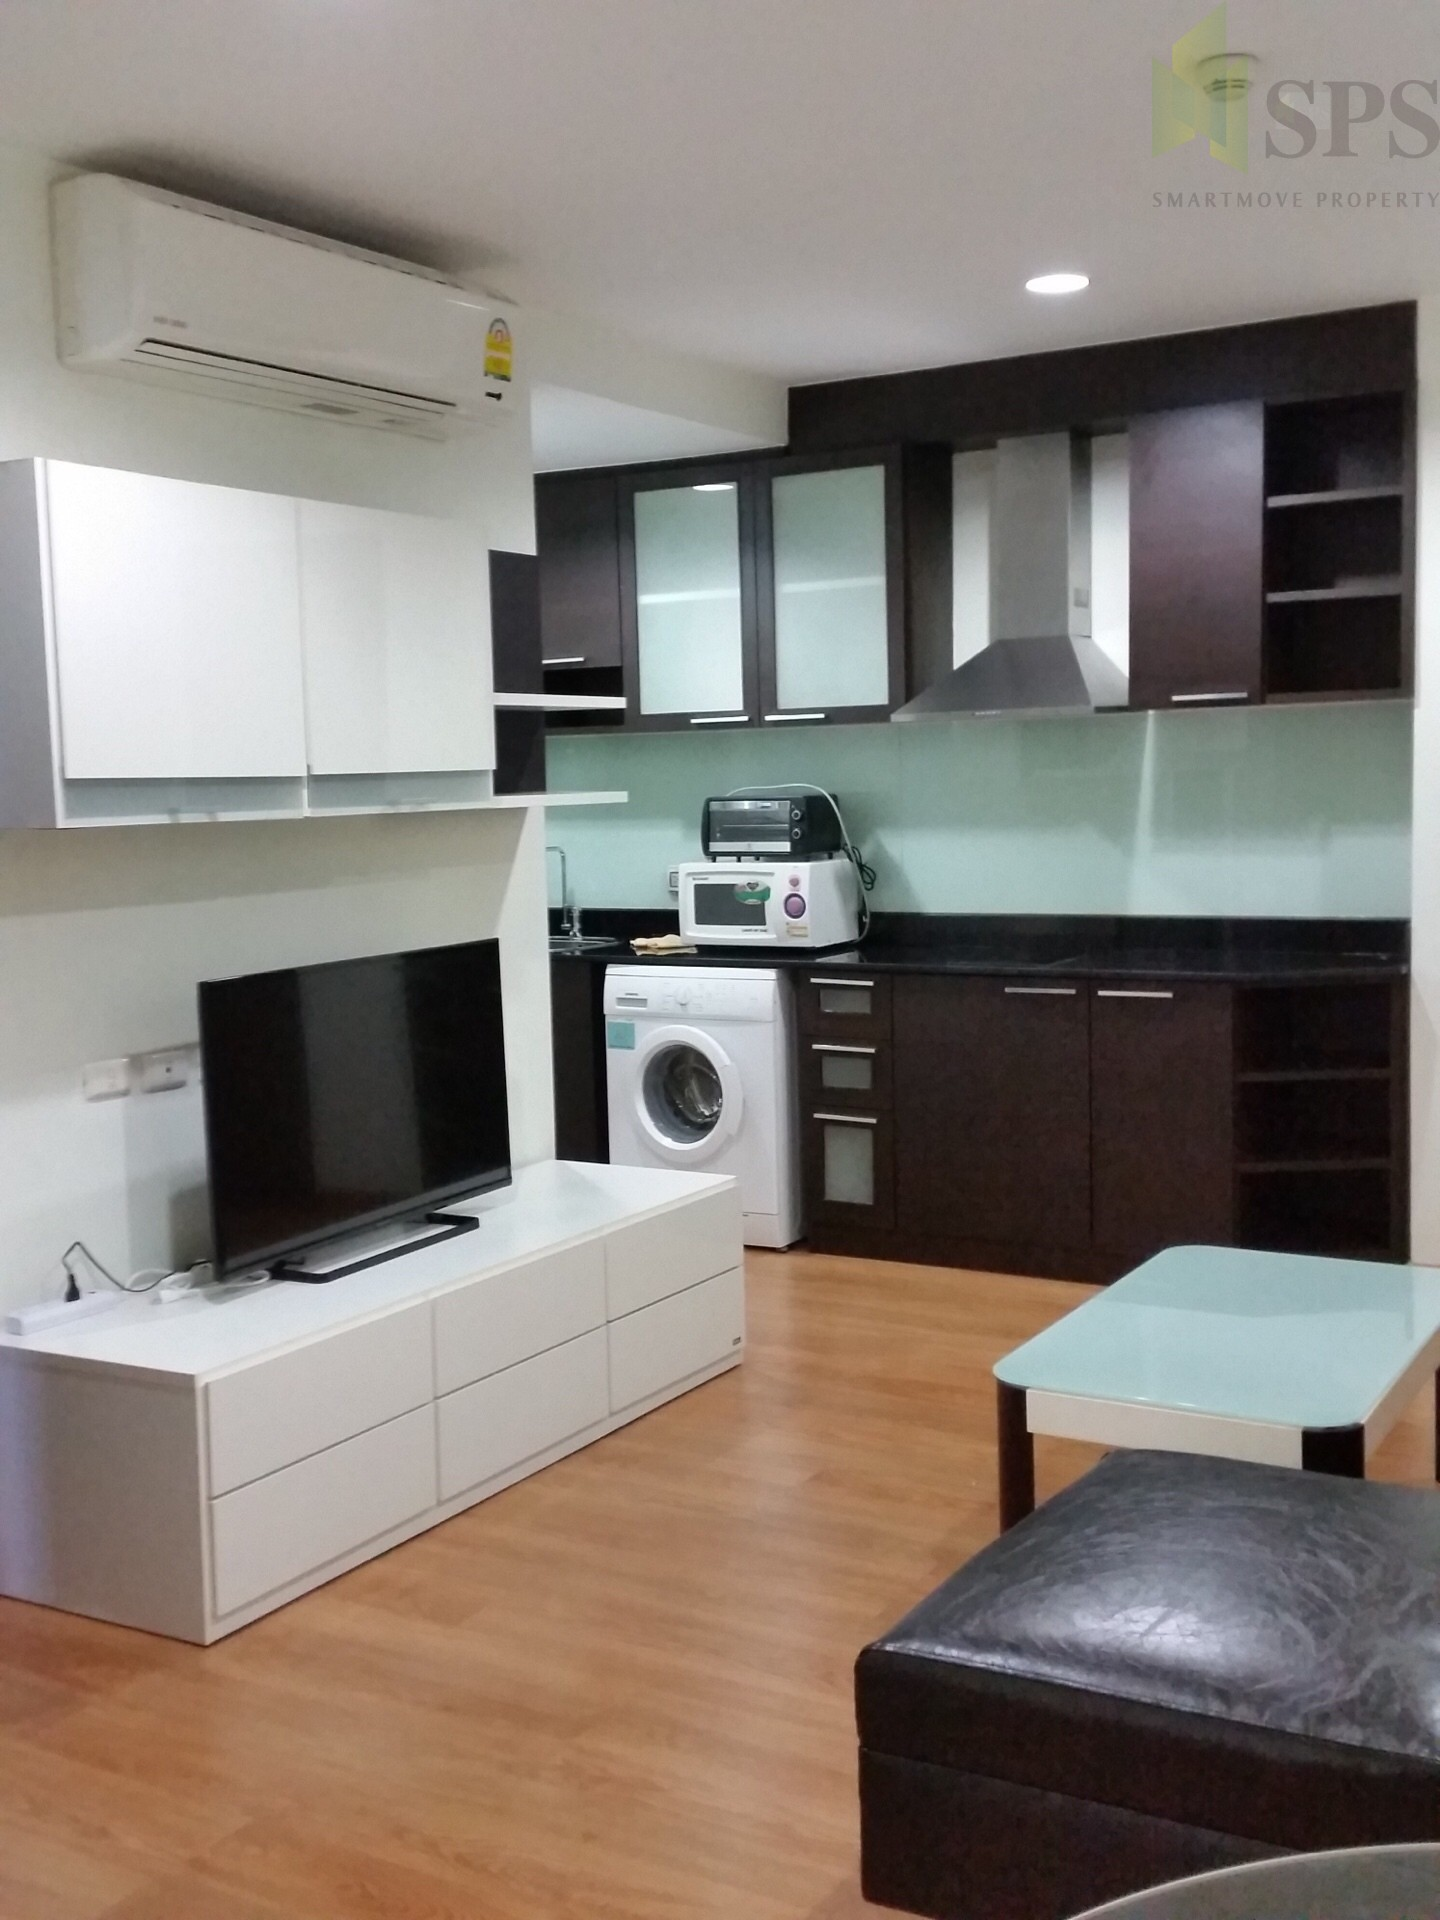 The Address Sukhumvit 42 (SPS-GC39)